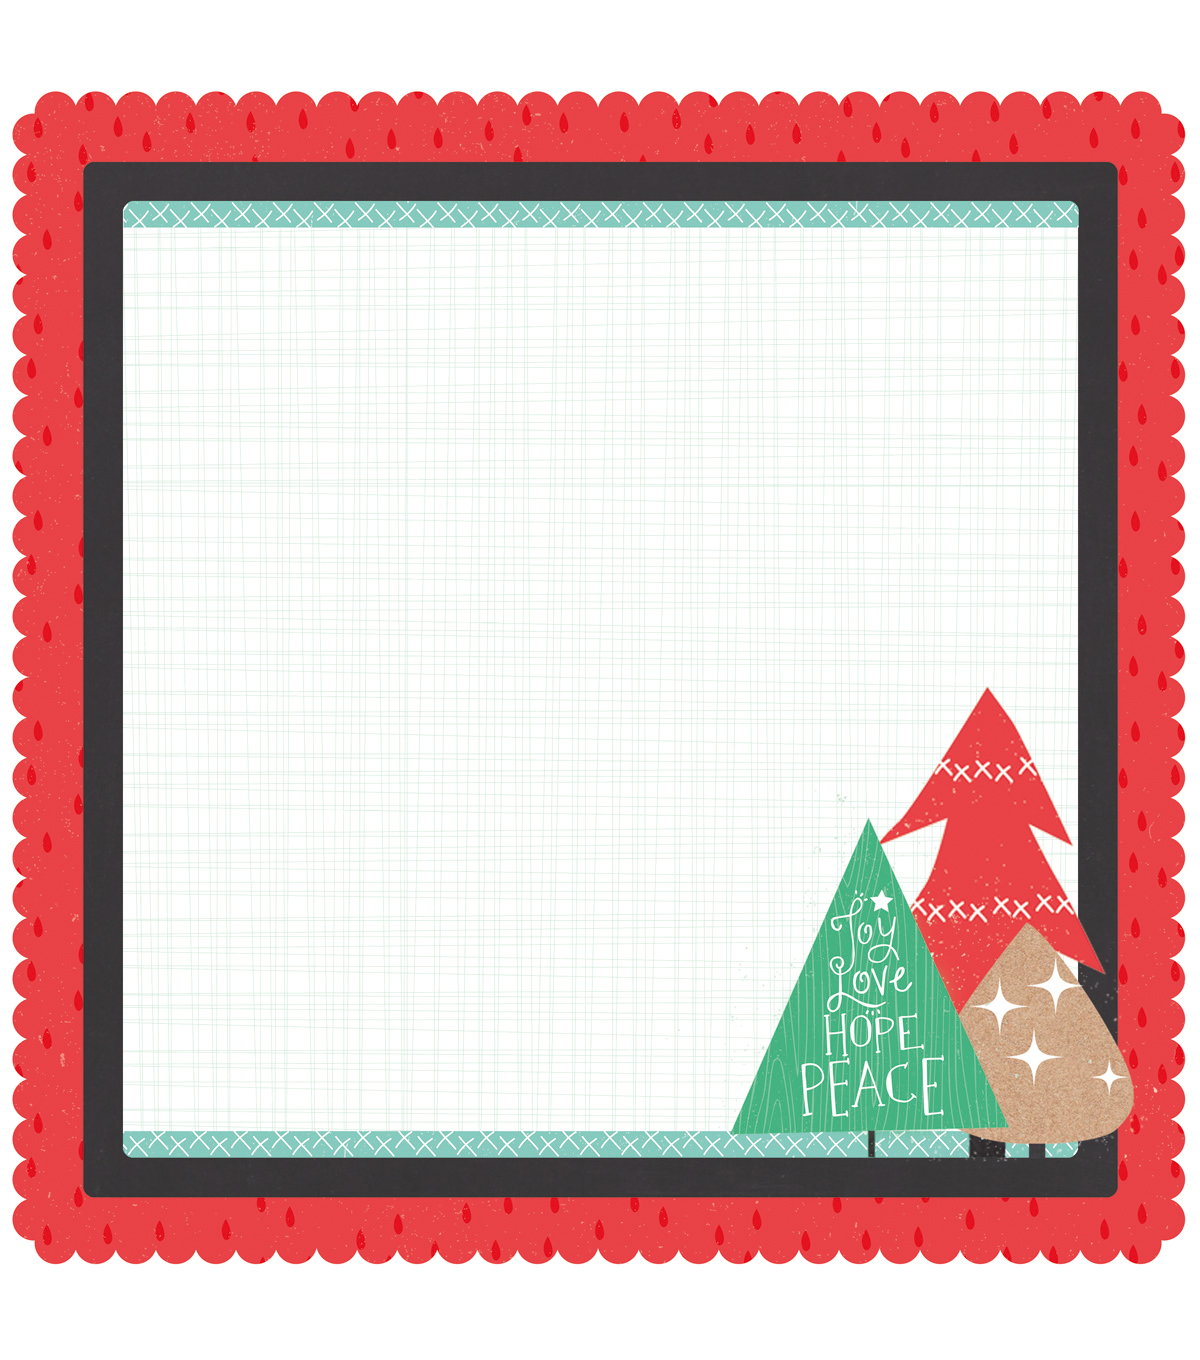 Kaisercraft Holly Jolly Cardstock Die-Cut-Pine